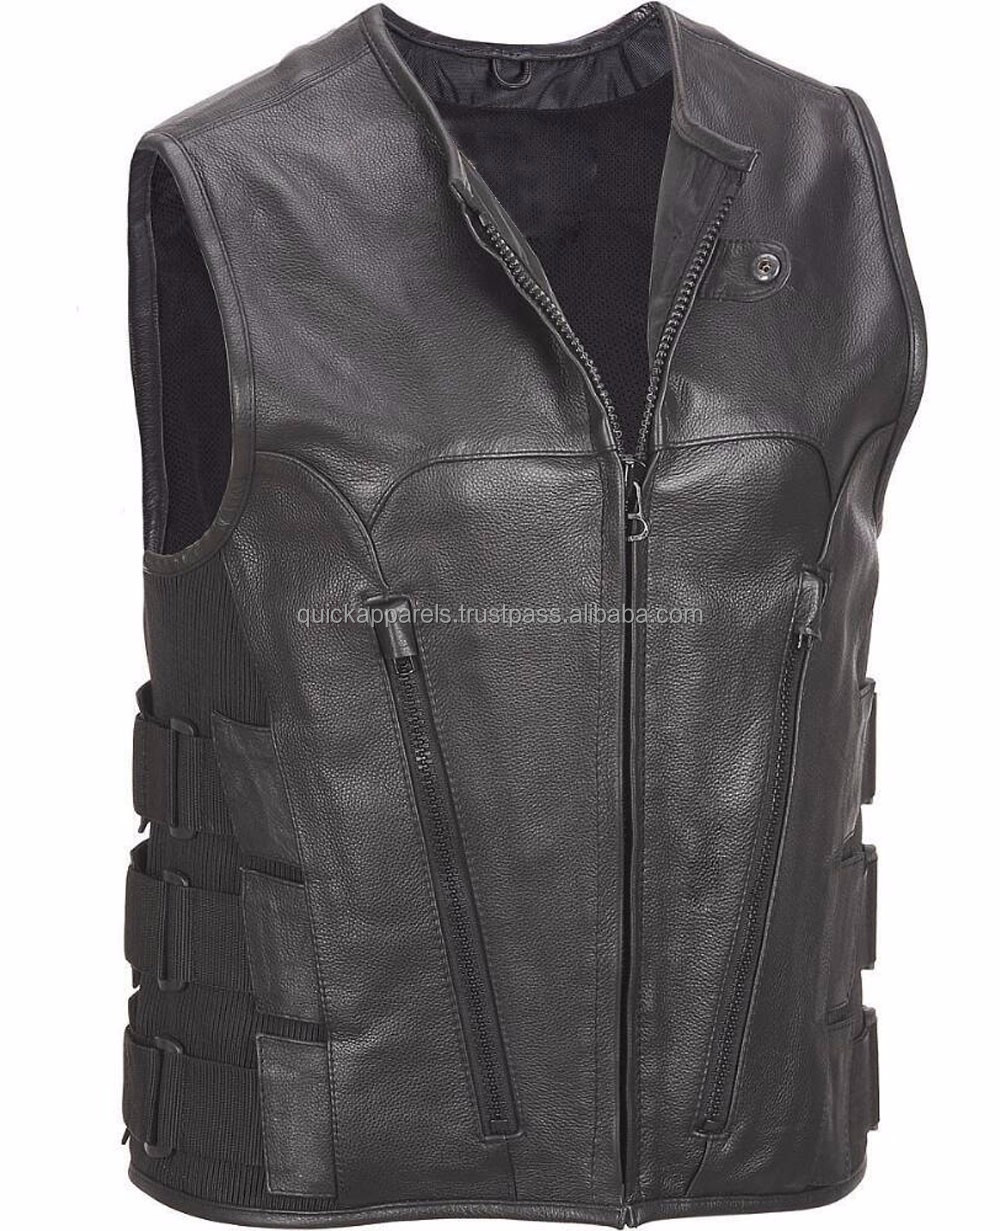 Free size fashionable wholesale cheap mens leather jackets